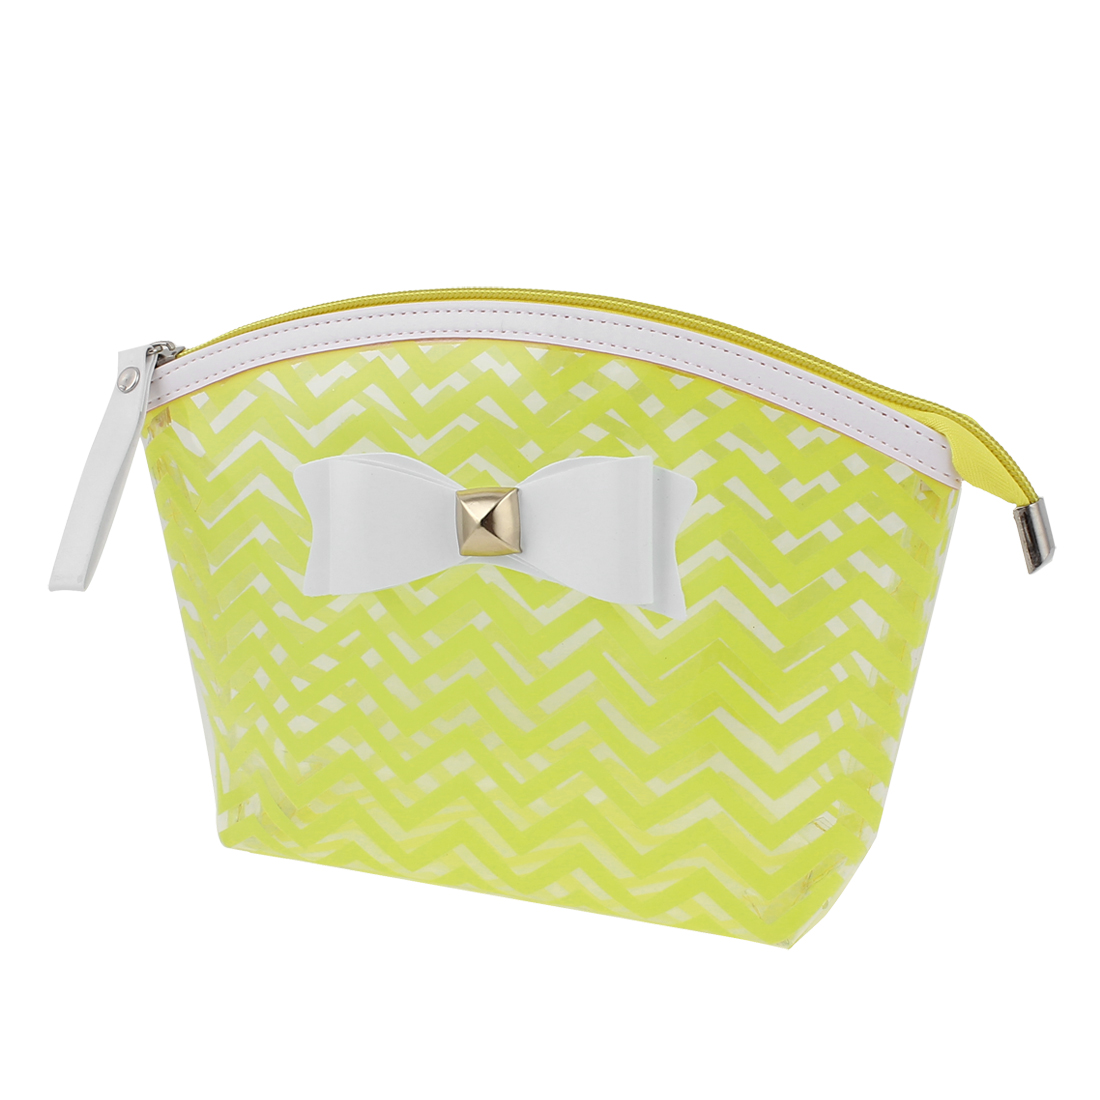 Lady Travel Zip Up Bowknot Decor Wave Line Pattern PVC Cosmetic Makeup Bag Handbag Toiletries Sundrise Holder Yellow